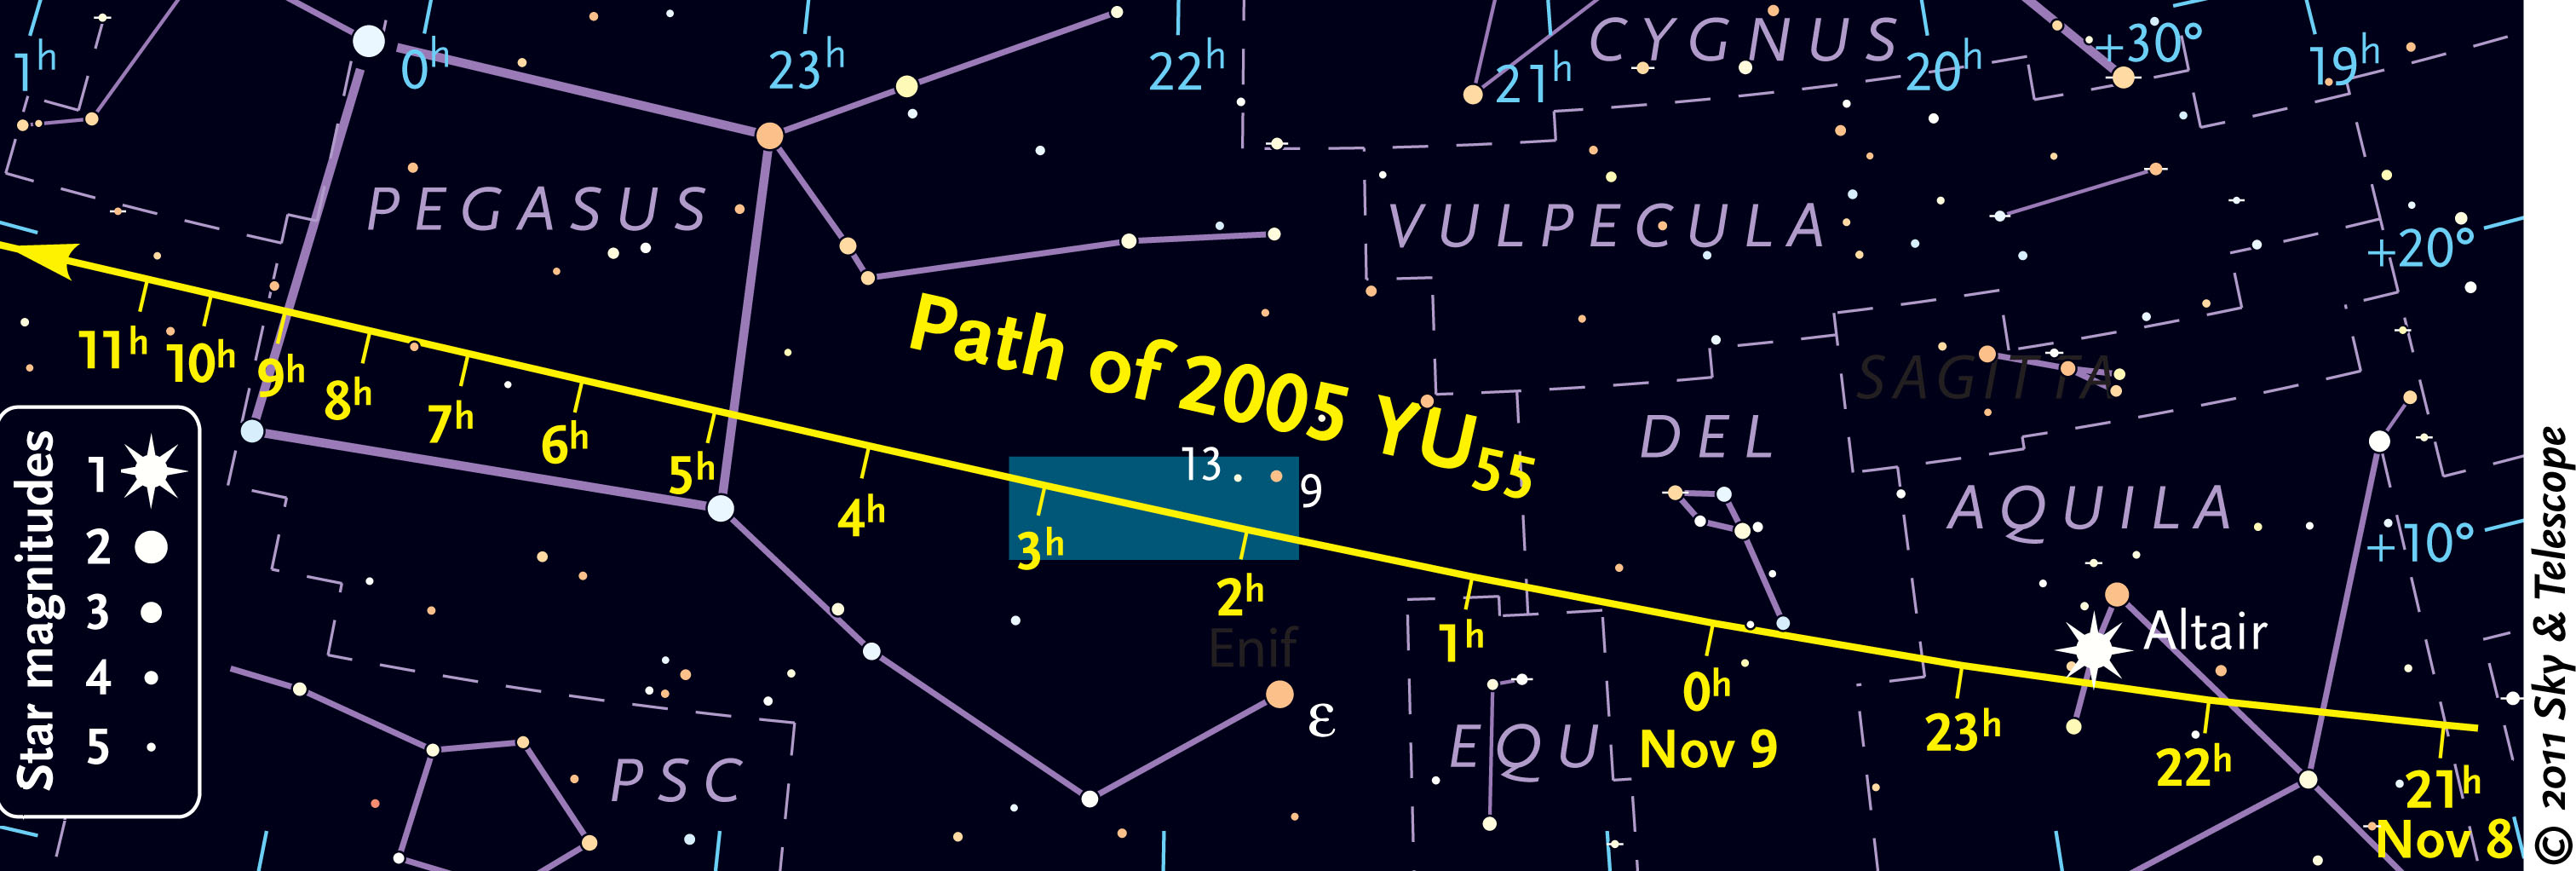 Sky Chart for Asteroid 2005 YU55